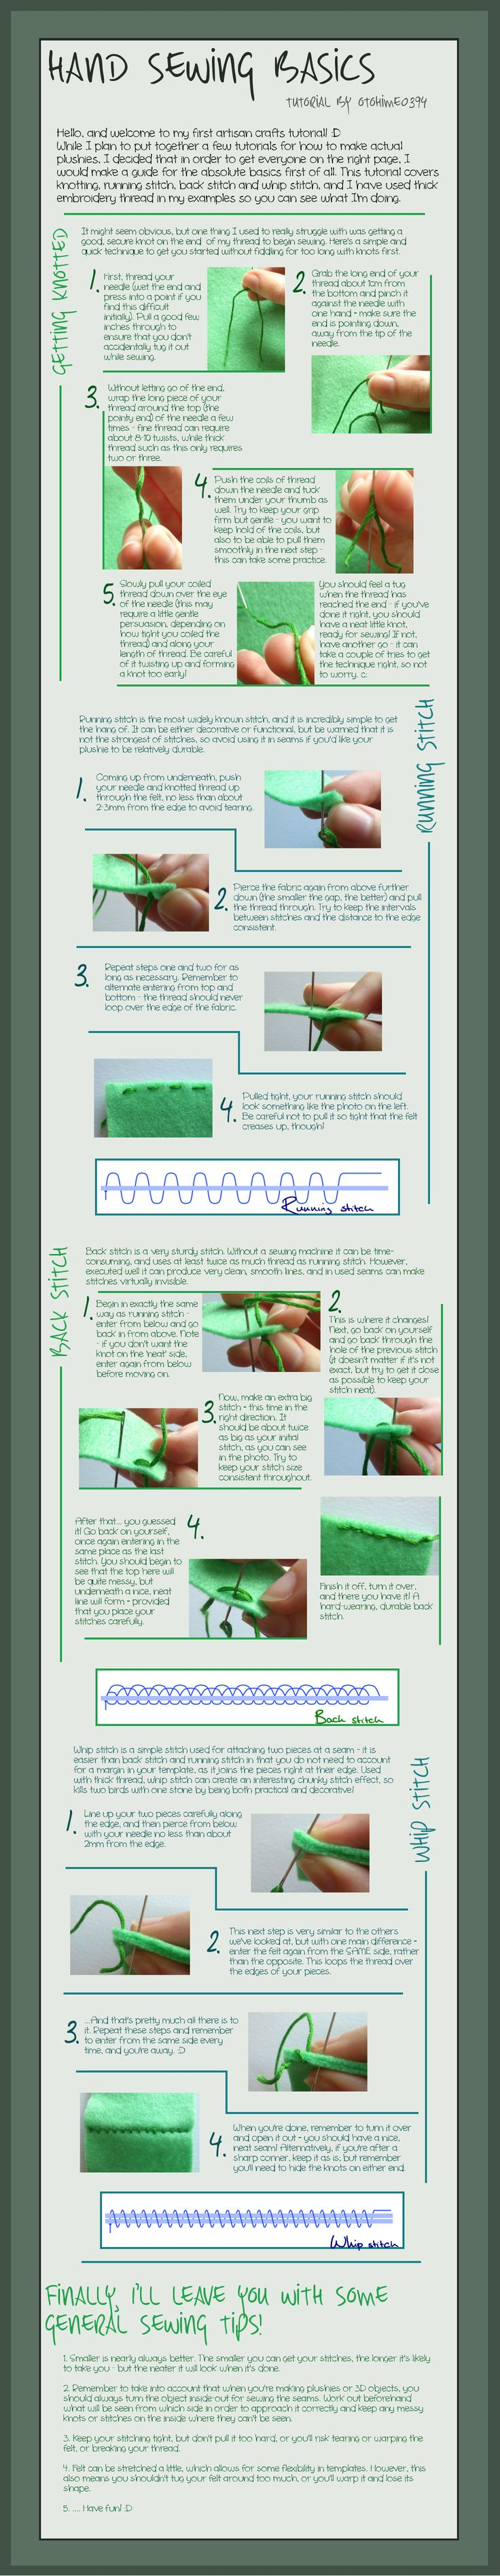 Hand Sewing Basics - Tutorial by otohime0394.deviantart.com on @deviantART